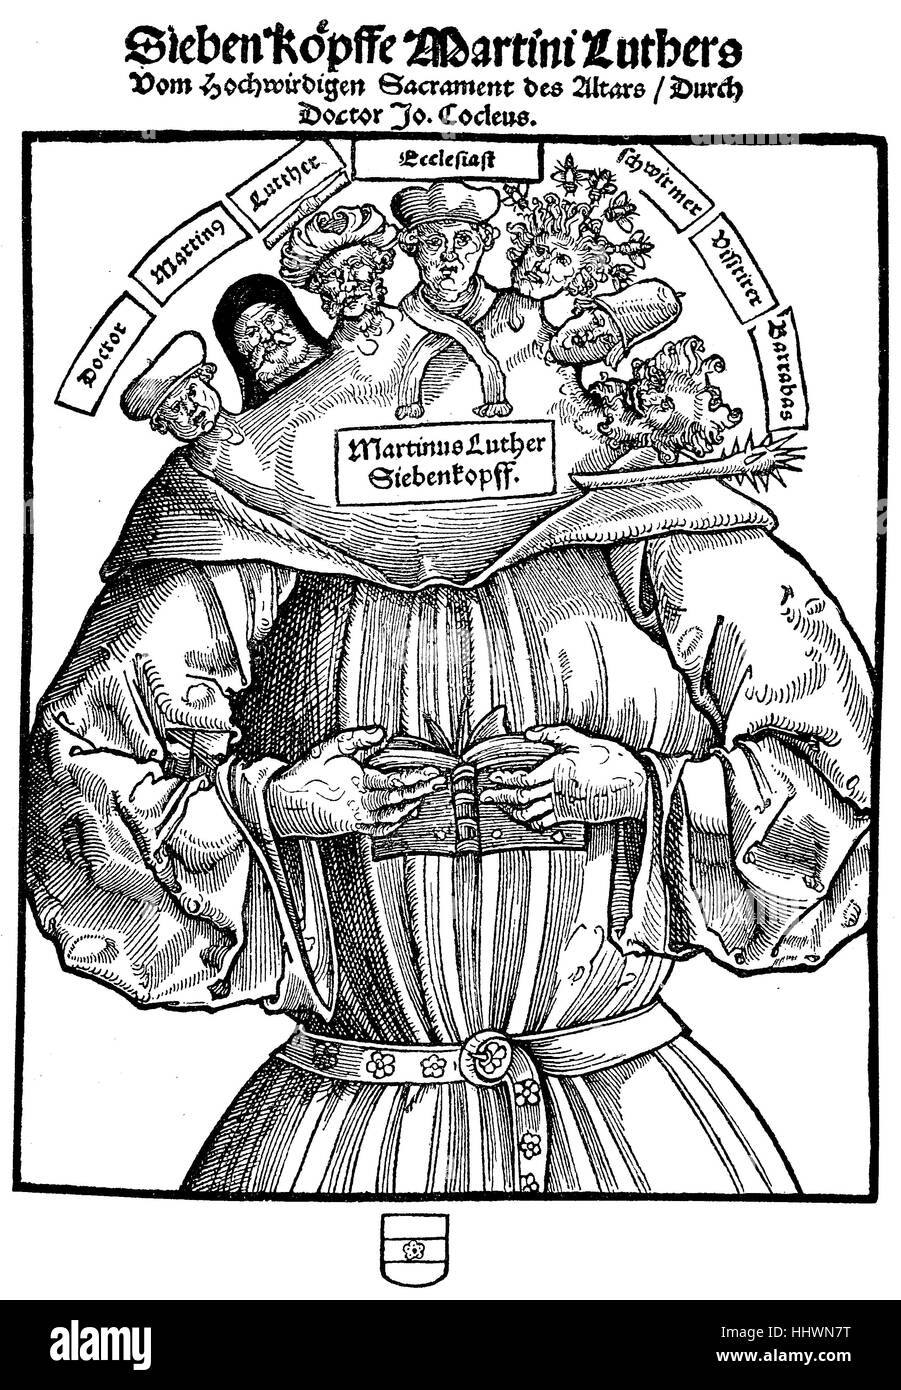 Facsimile, flyer from the Reformation period against Martin Luther, Martinus Luther Siebenkopf, Germany, historical - Stock Image